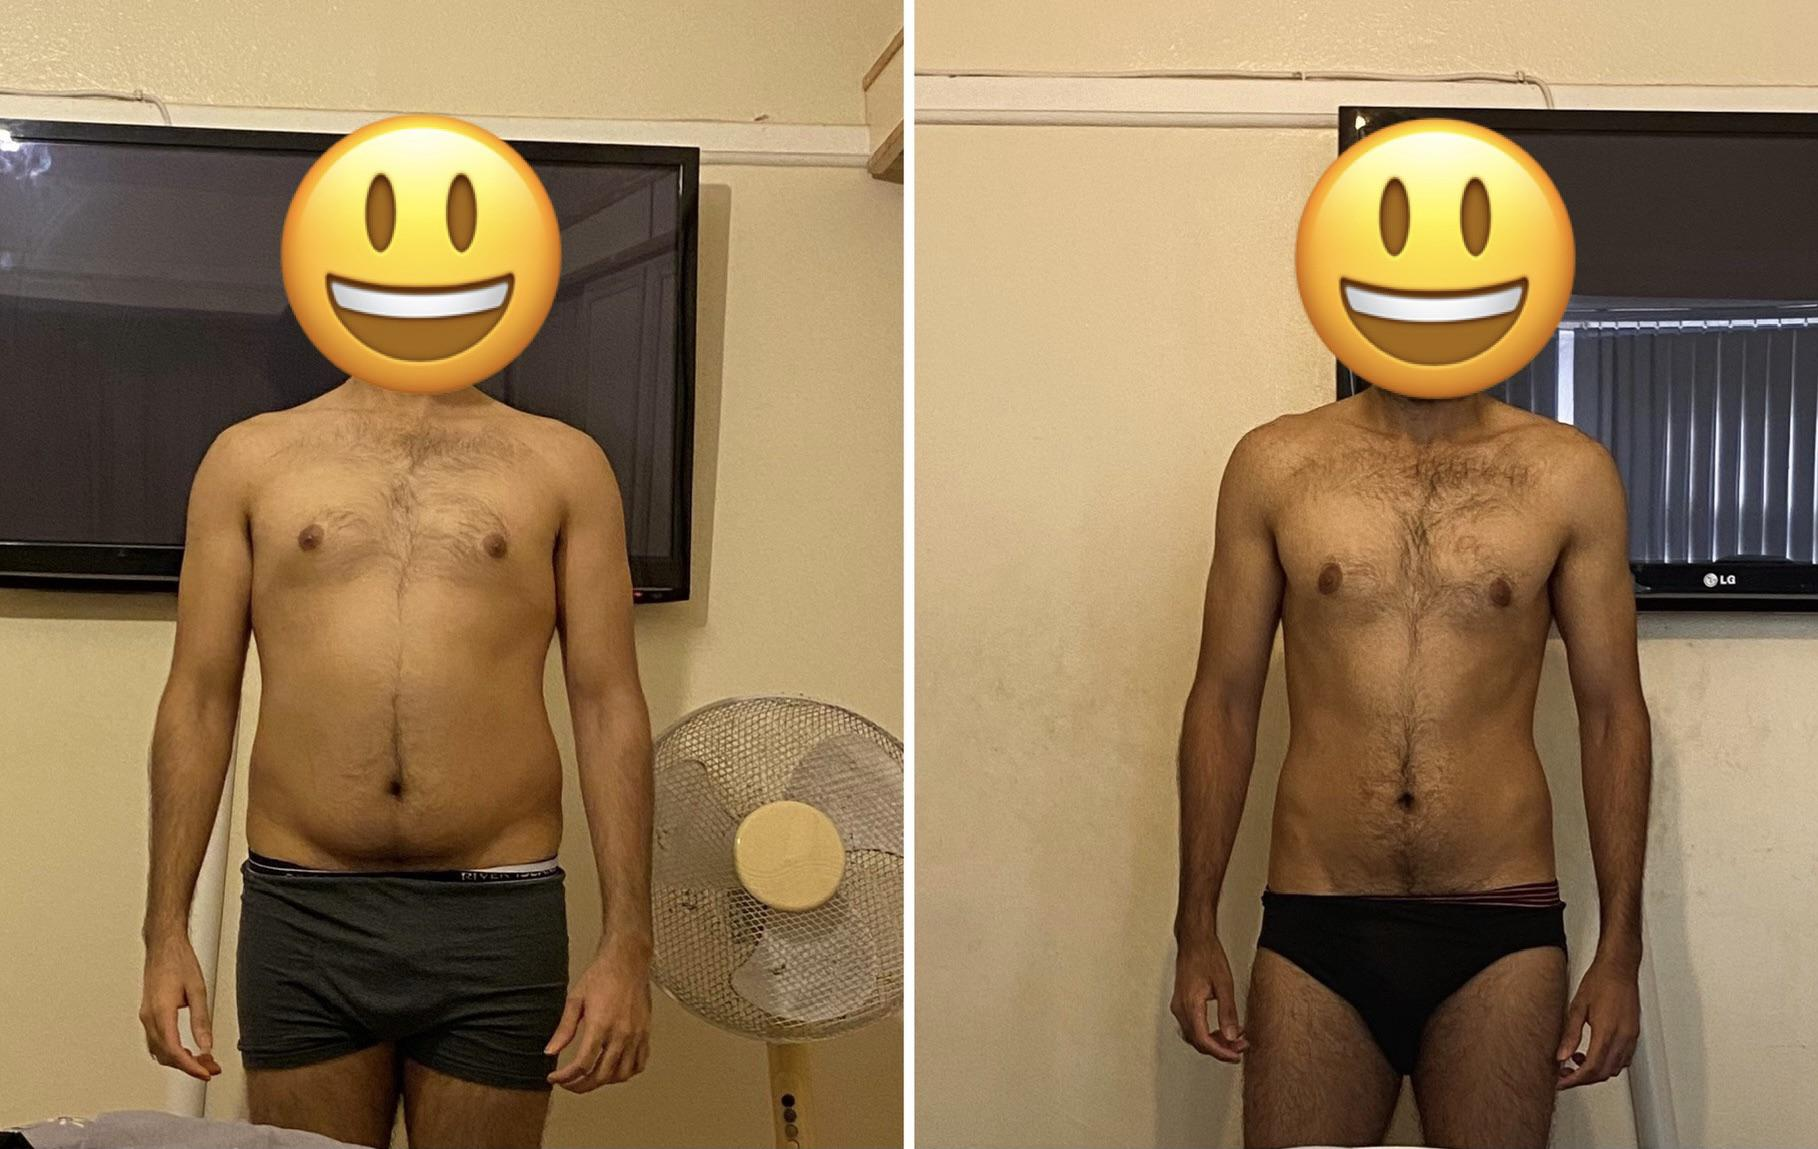 17 lbs Fat Loss Before and After 5 feet 10 Male 165 lbs to 148 lbs